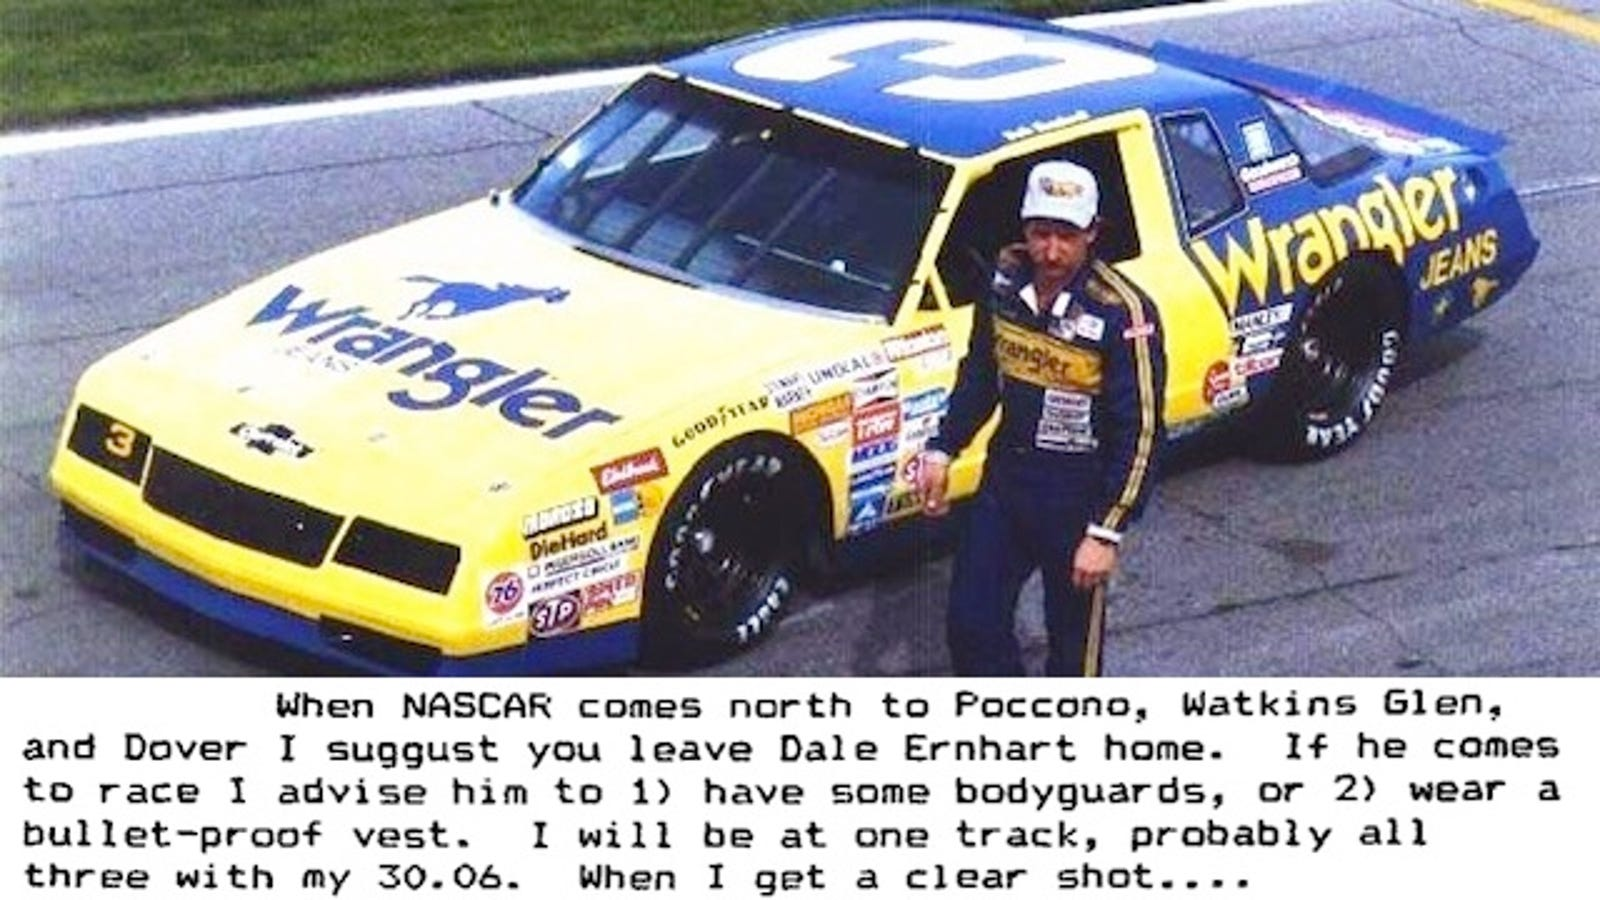 25 years ago dale earnhardt received this death threat for his ornery driving